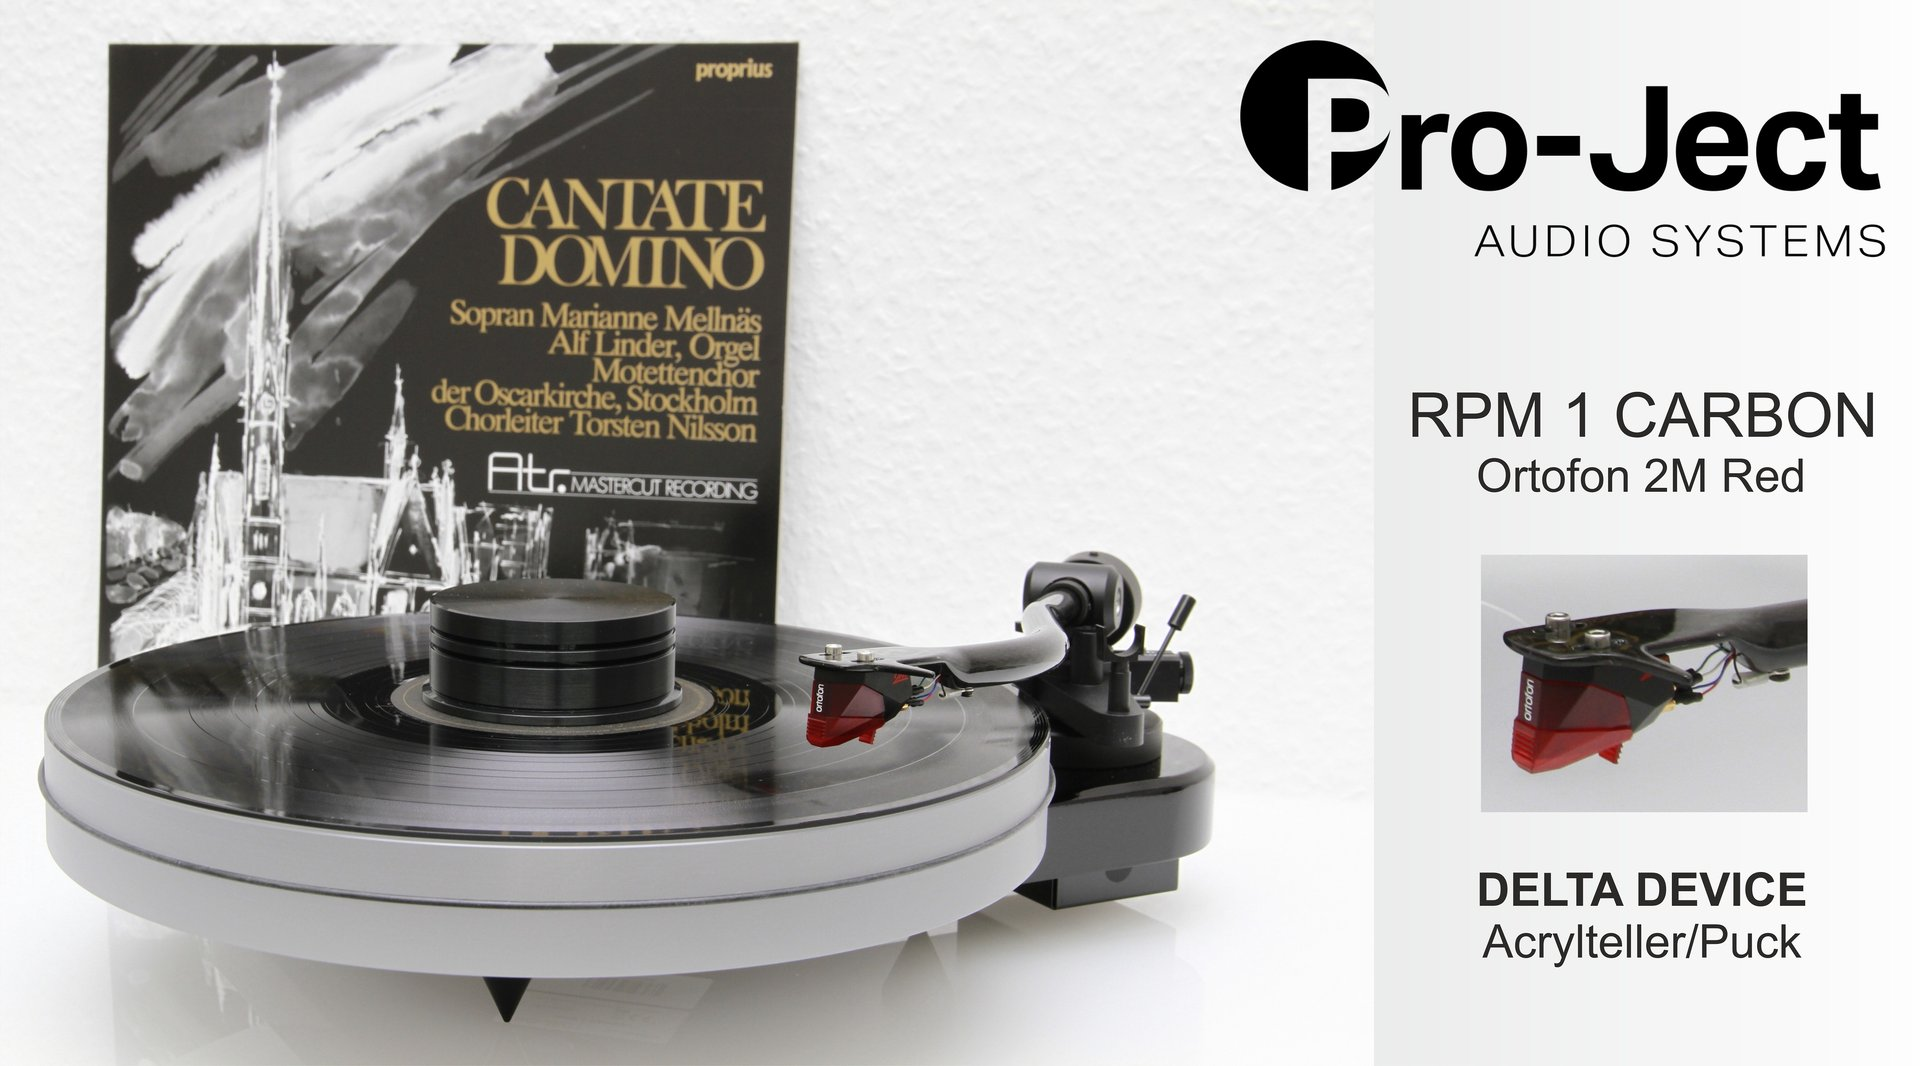 PRO-JECT RPM 1 CARBON turntable + DELTA DEVICE UPGRADE | chassis: black